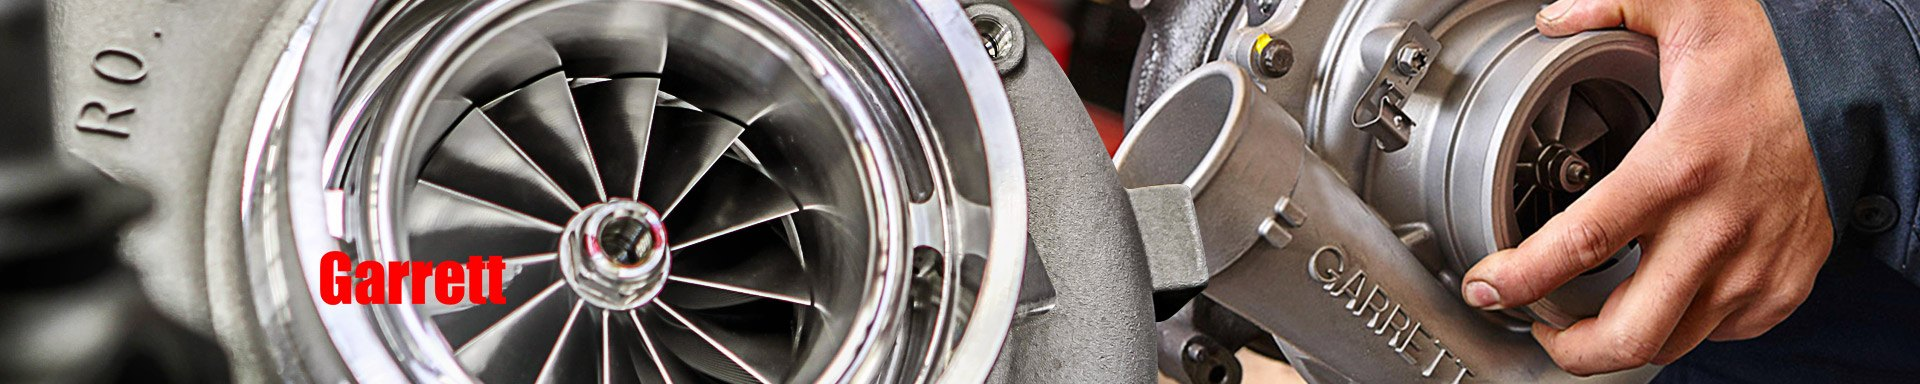 Garrett Replacement Turbo & Superchargers